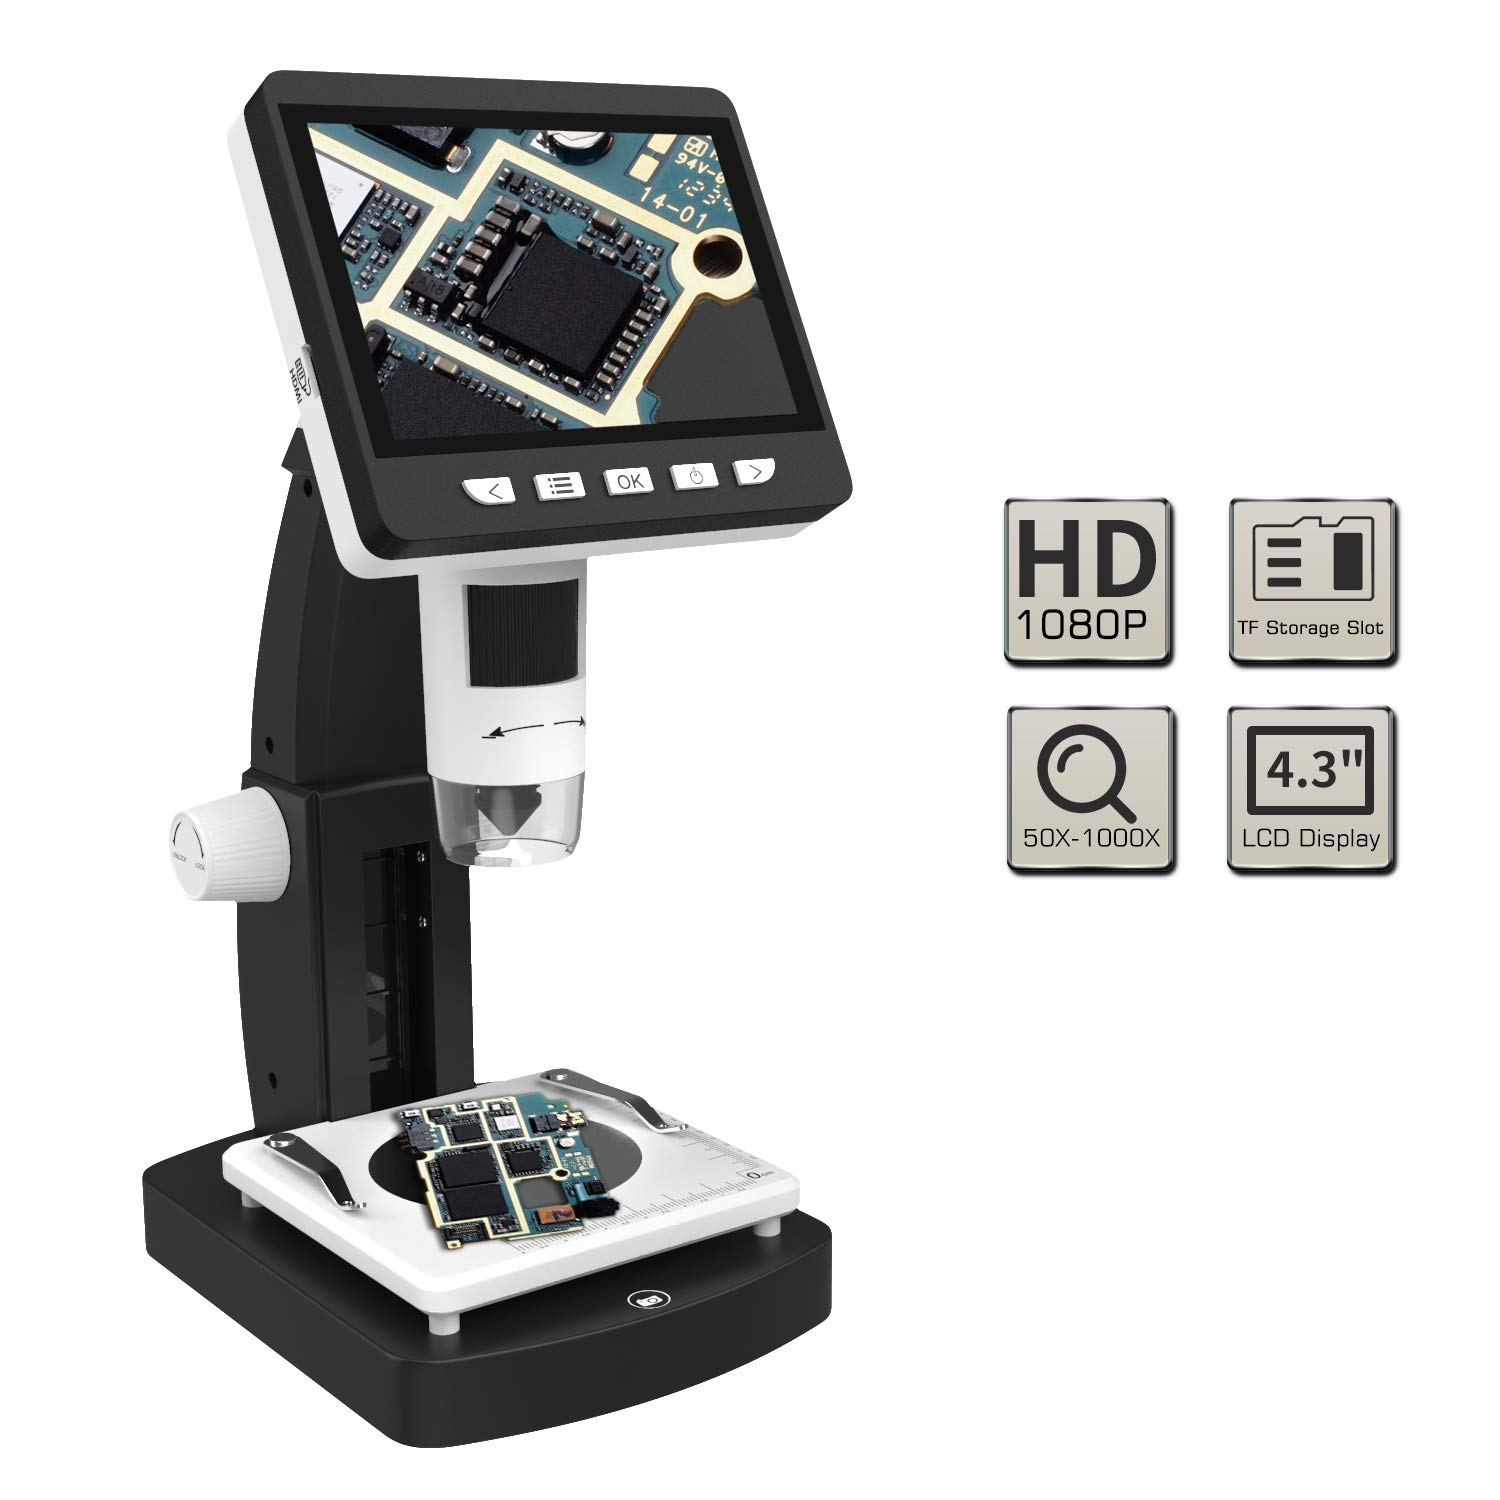 MoKo USB LCD Digital Microscope with 2M HD Image Sensor, 50x-1000x Magnification, 4.3'' TFT Display, 8 LED, Camera Video Recorder, Rechargeable Battery, Support Windows & Mac PC - Black & White by MoKo